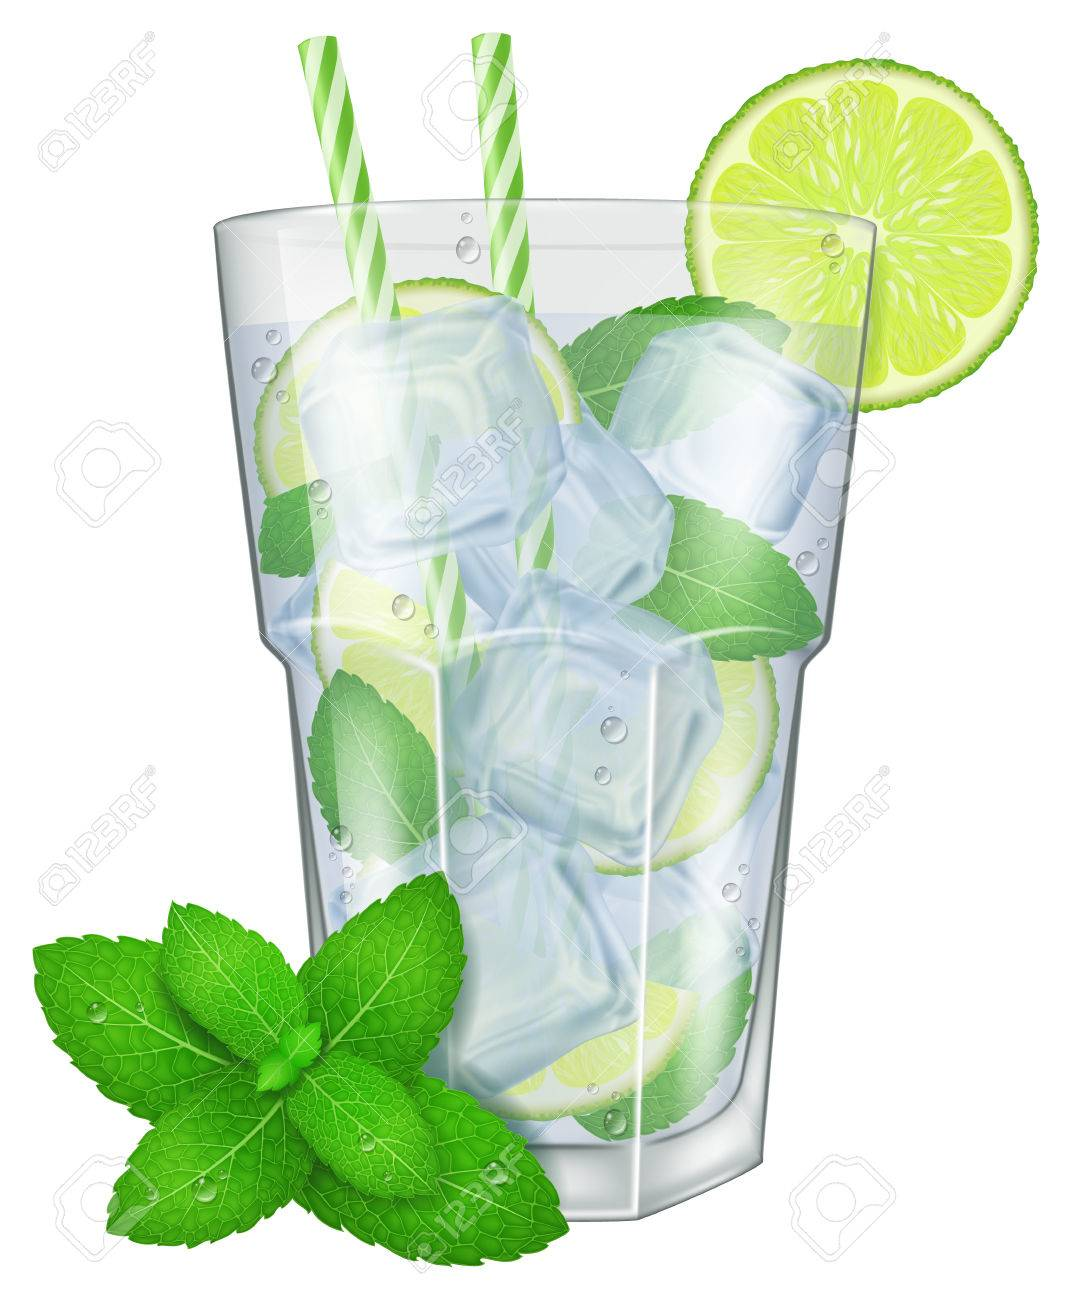 Mojito Glas A Glass Of Mojito With Mint Leaves Vector Illustration